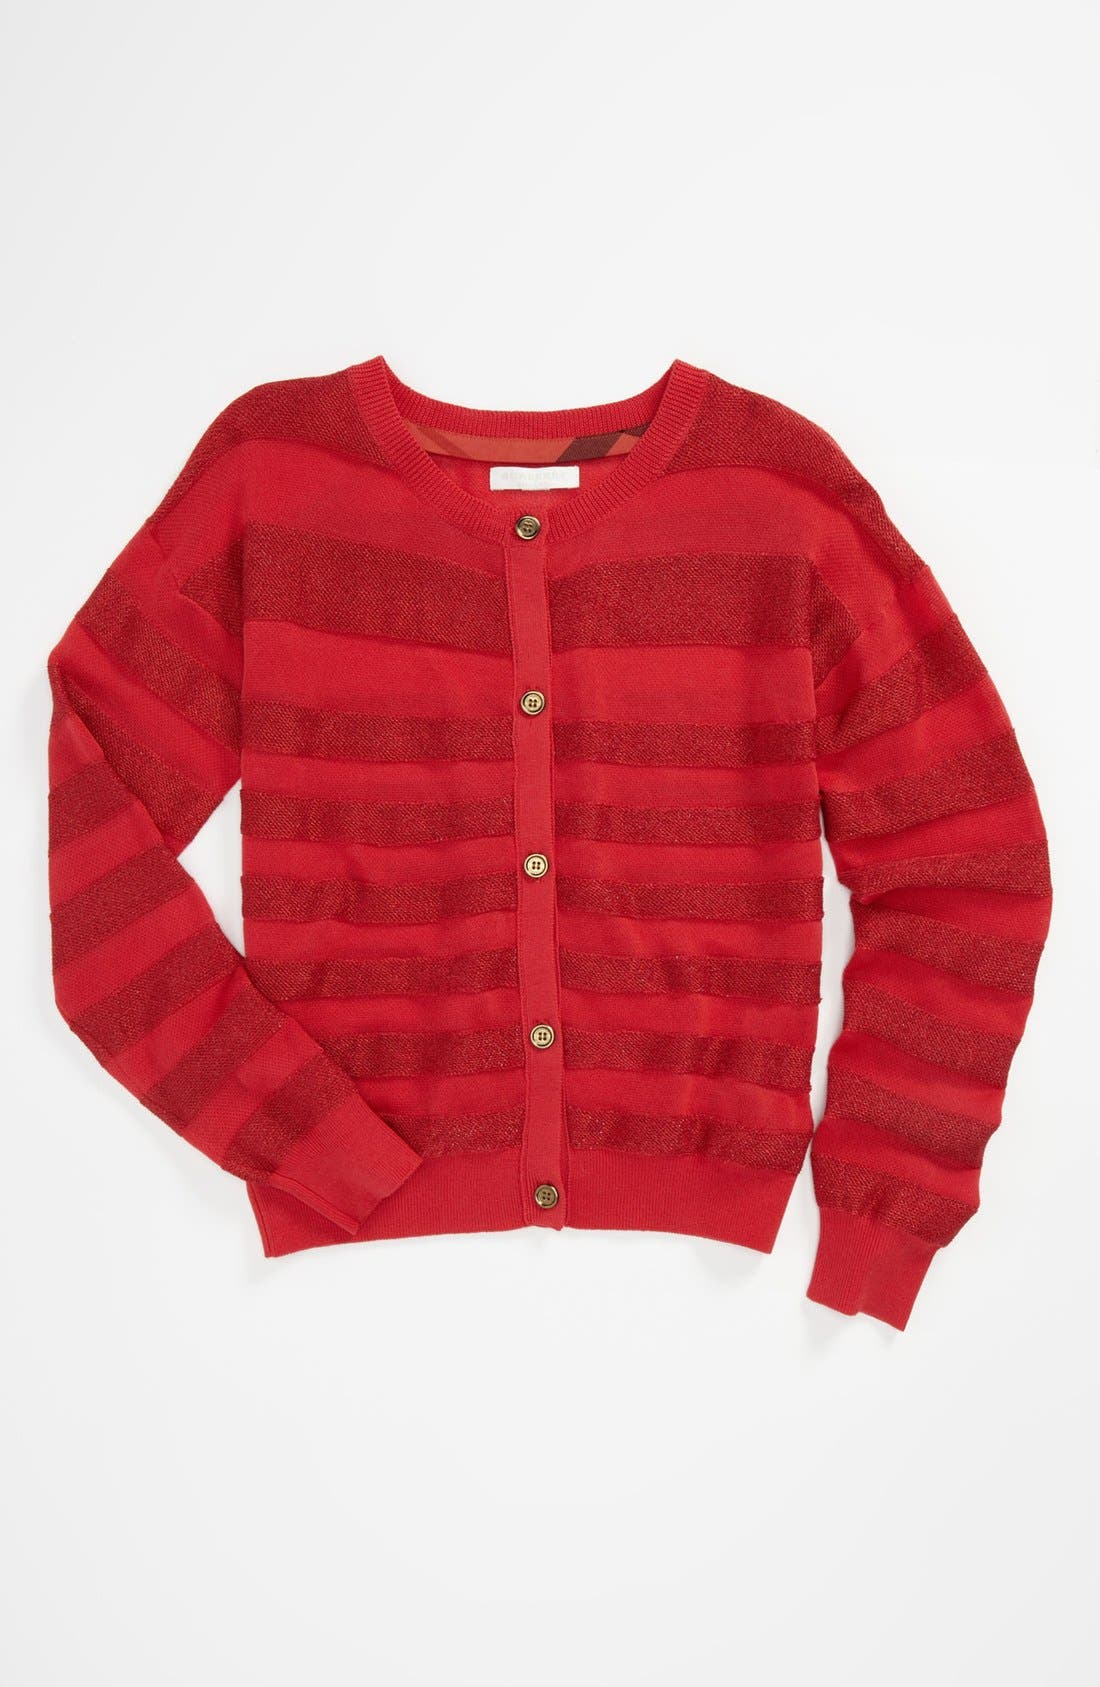 Main Image - Burberry 'Kimberly' Cardigan (Little Girls & Big Girls)